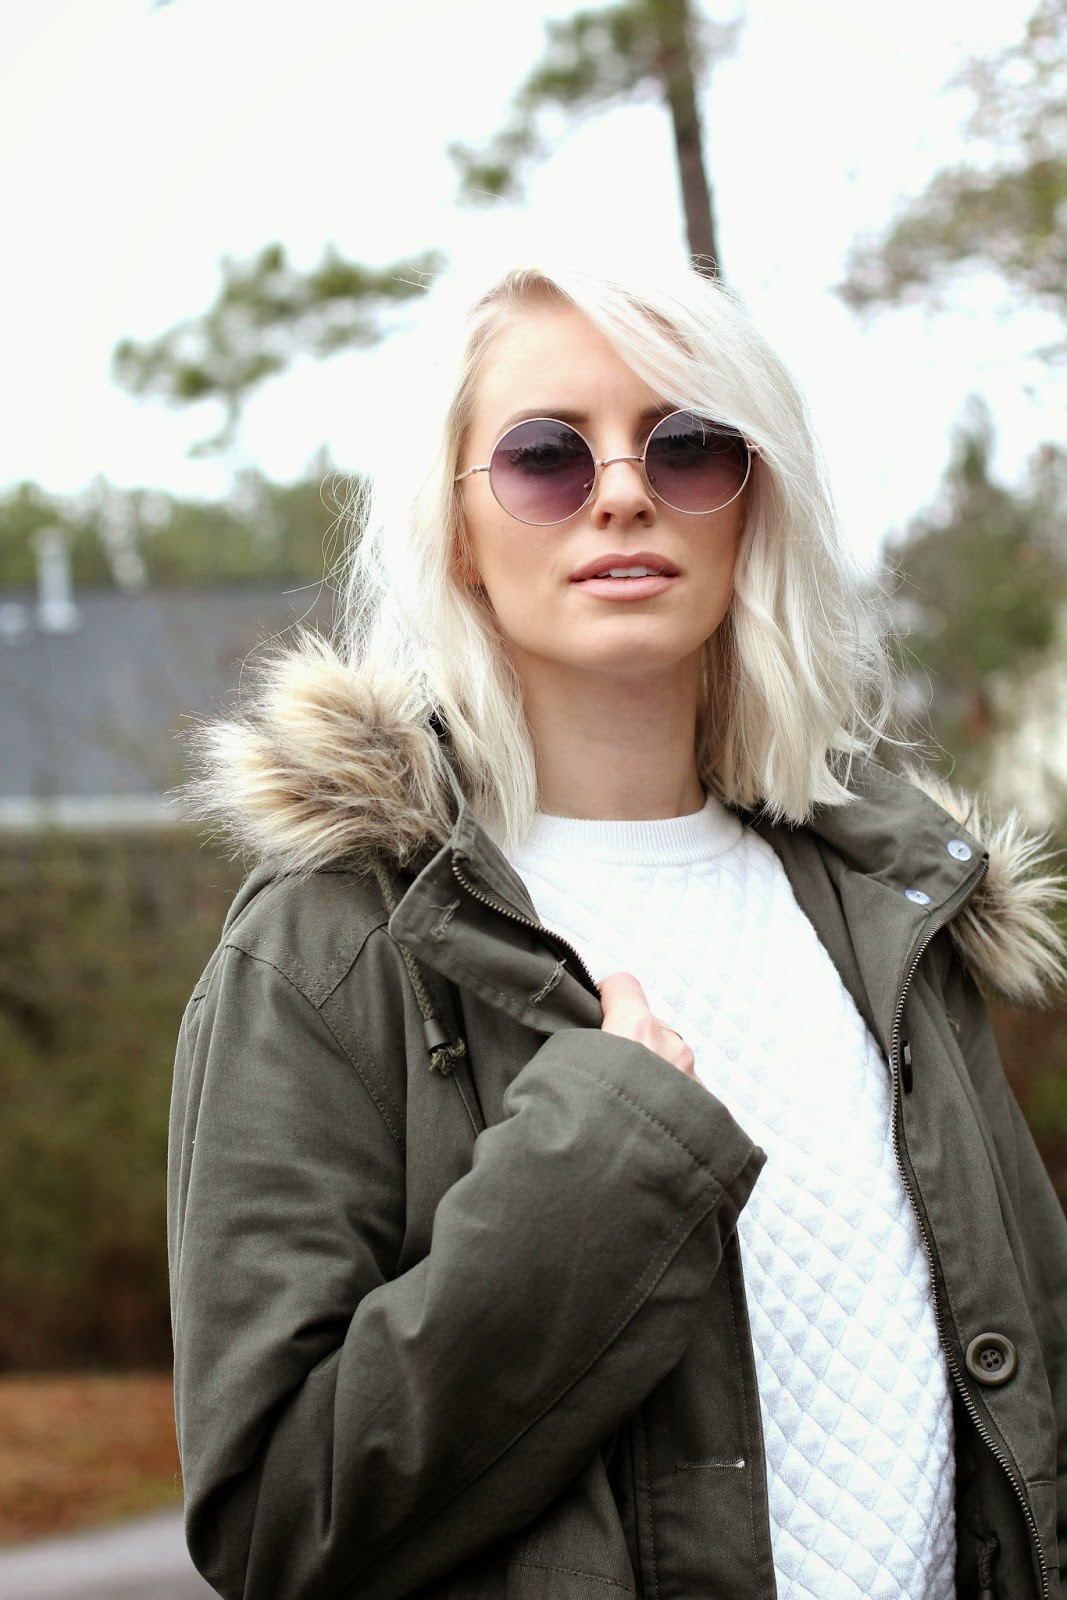 olive green parka with brown fur hood tobi boutique cream white quilted sweater top denim boyfriend jeans target cuffed brown combat military boots jacket platinum blonde hair short long bob tousled round glasses elton john lennon woods mountain wear cold weather charleston sc blogger street style fashion like the yogurt dannon k collard